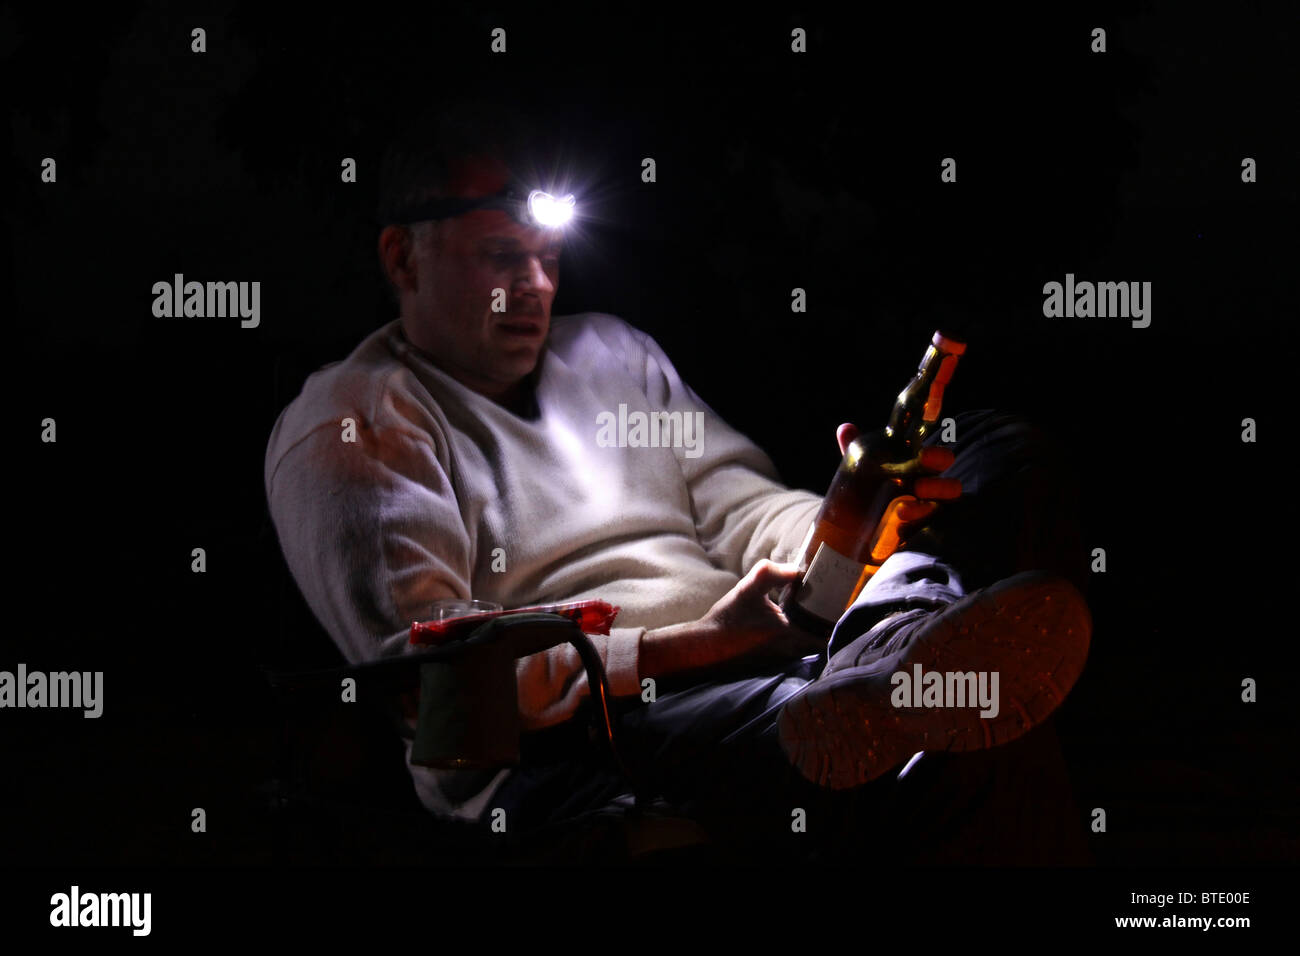 Man sitting with a headlamp on looking with  awe at a bottle of very expensive whiskey - Stock Image